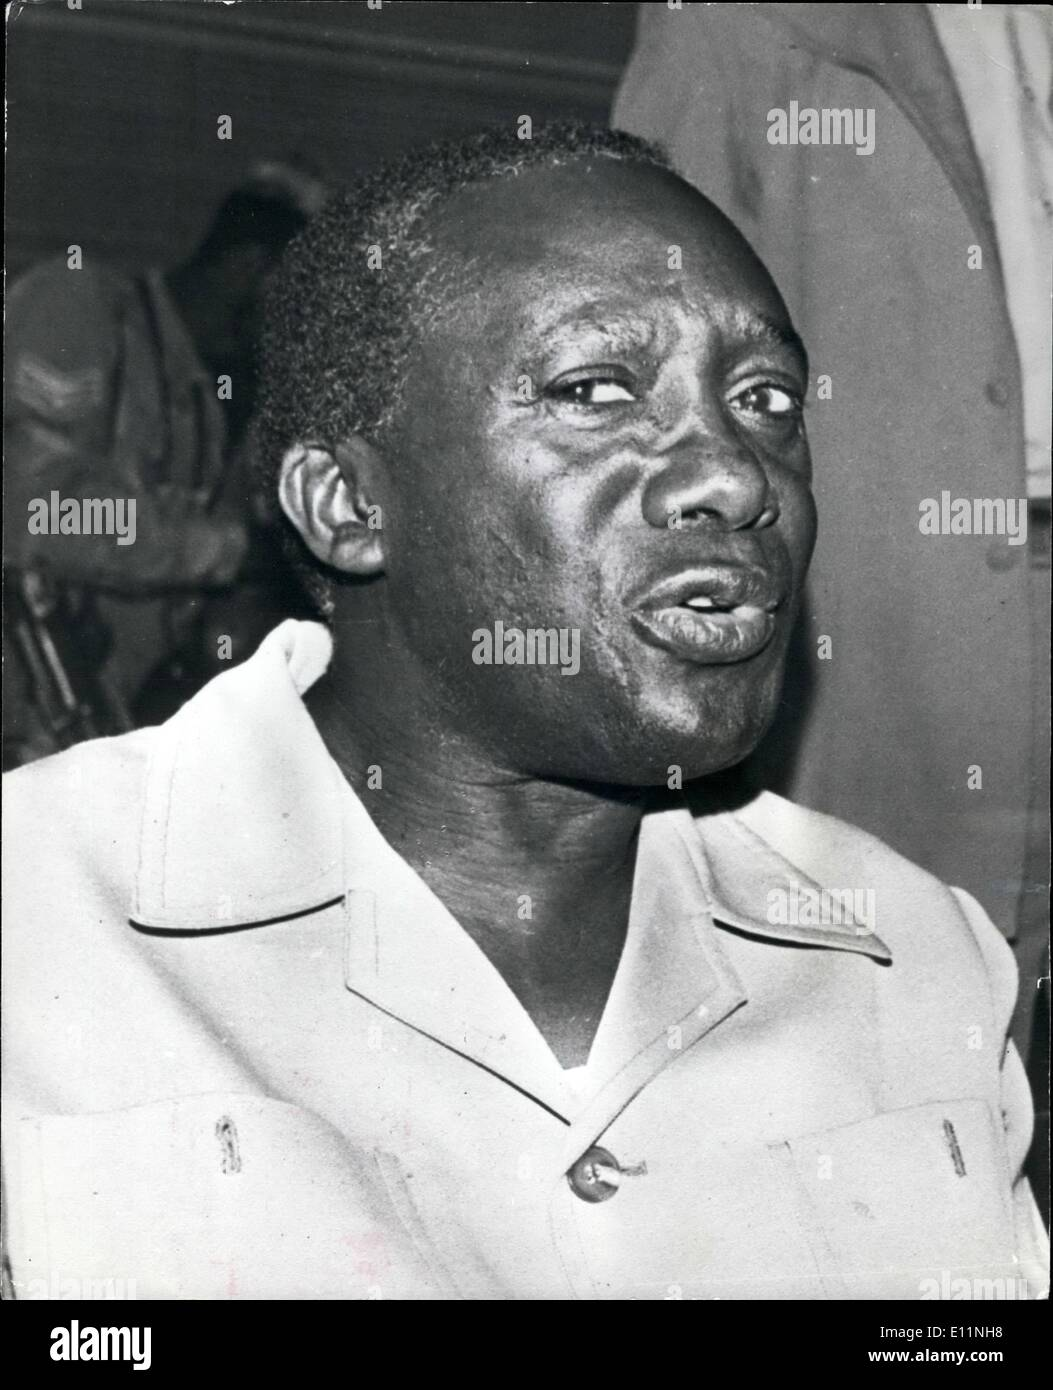 Apr. 04, 1979 - President Lule of Uganda calls elections: President Yusuf Lule, the new Head of State of Uganda, redeems his pledge to restore democracy to Uganda. In a Kamapala radio broadcast announcing local elections in areas around the Capital. - Stock Image